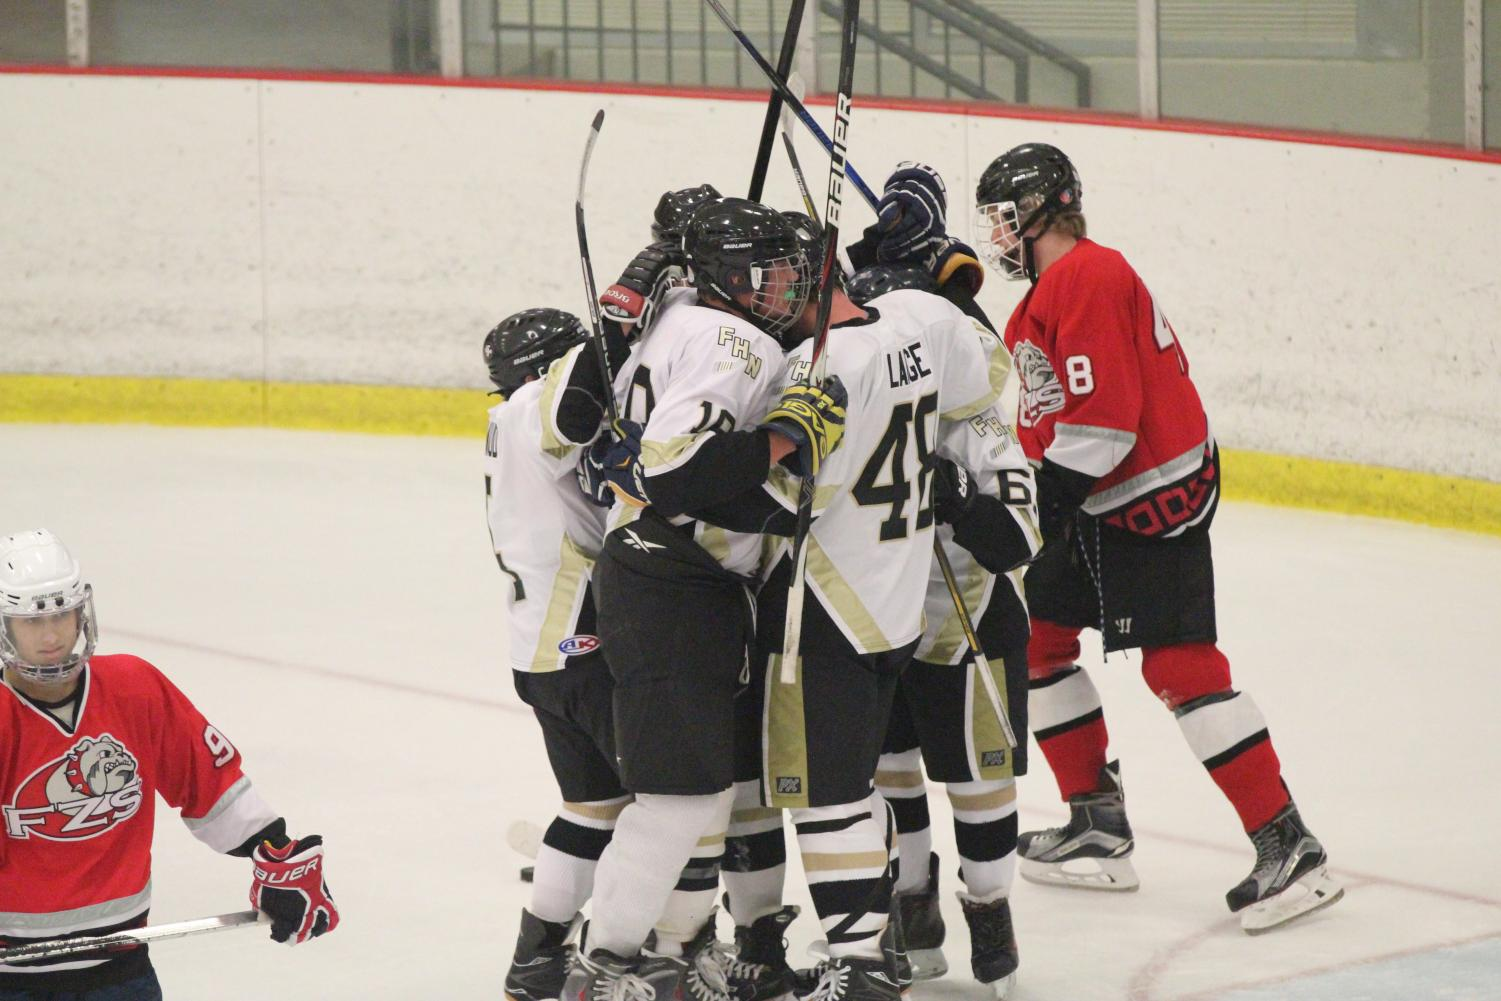 The varsity Knights hockey team celebrates a goal vs. Fort Zumwalt South